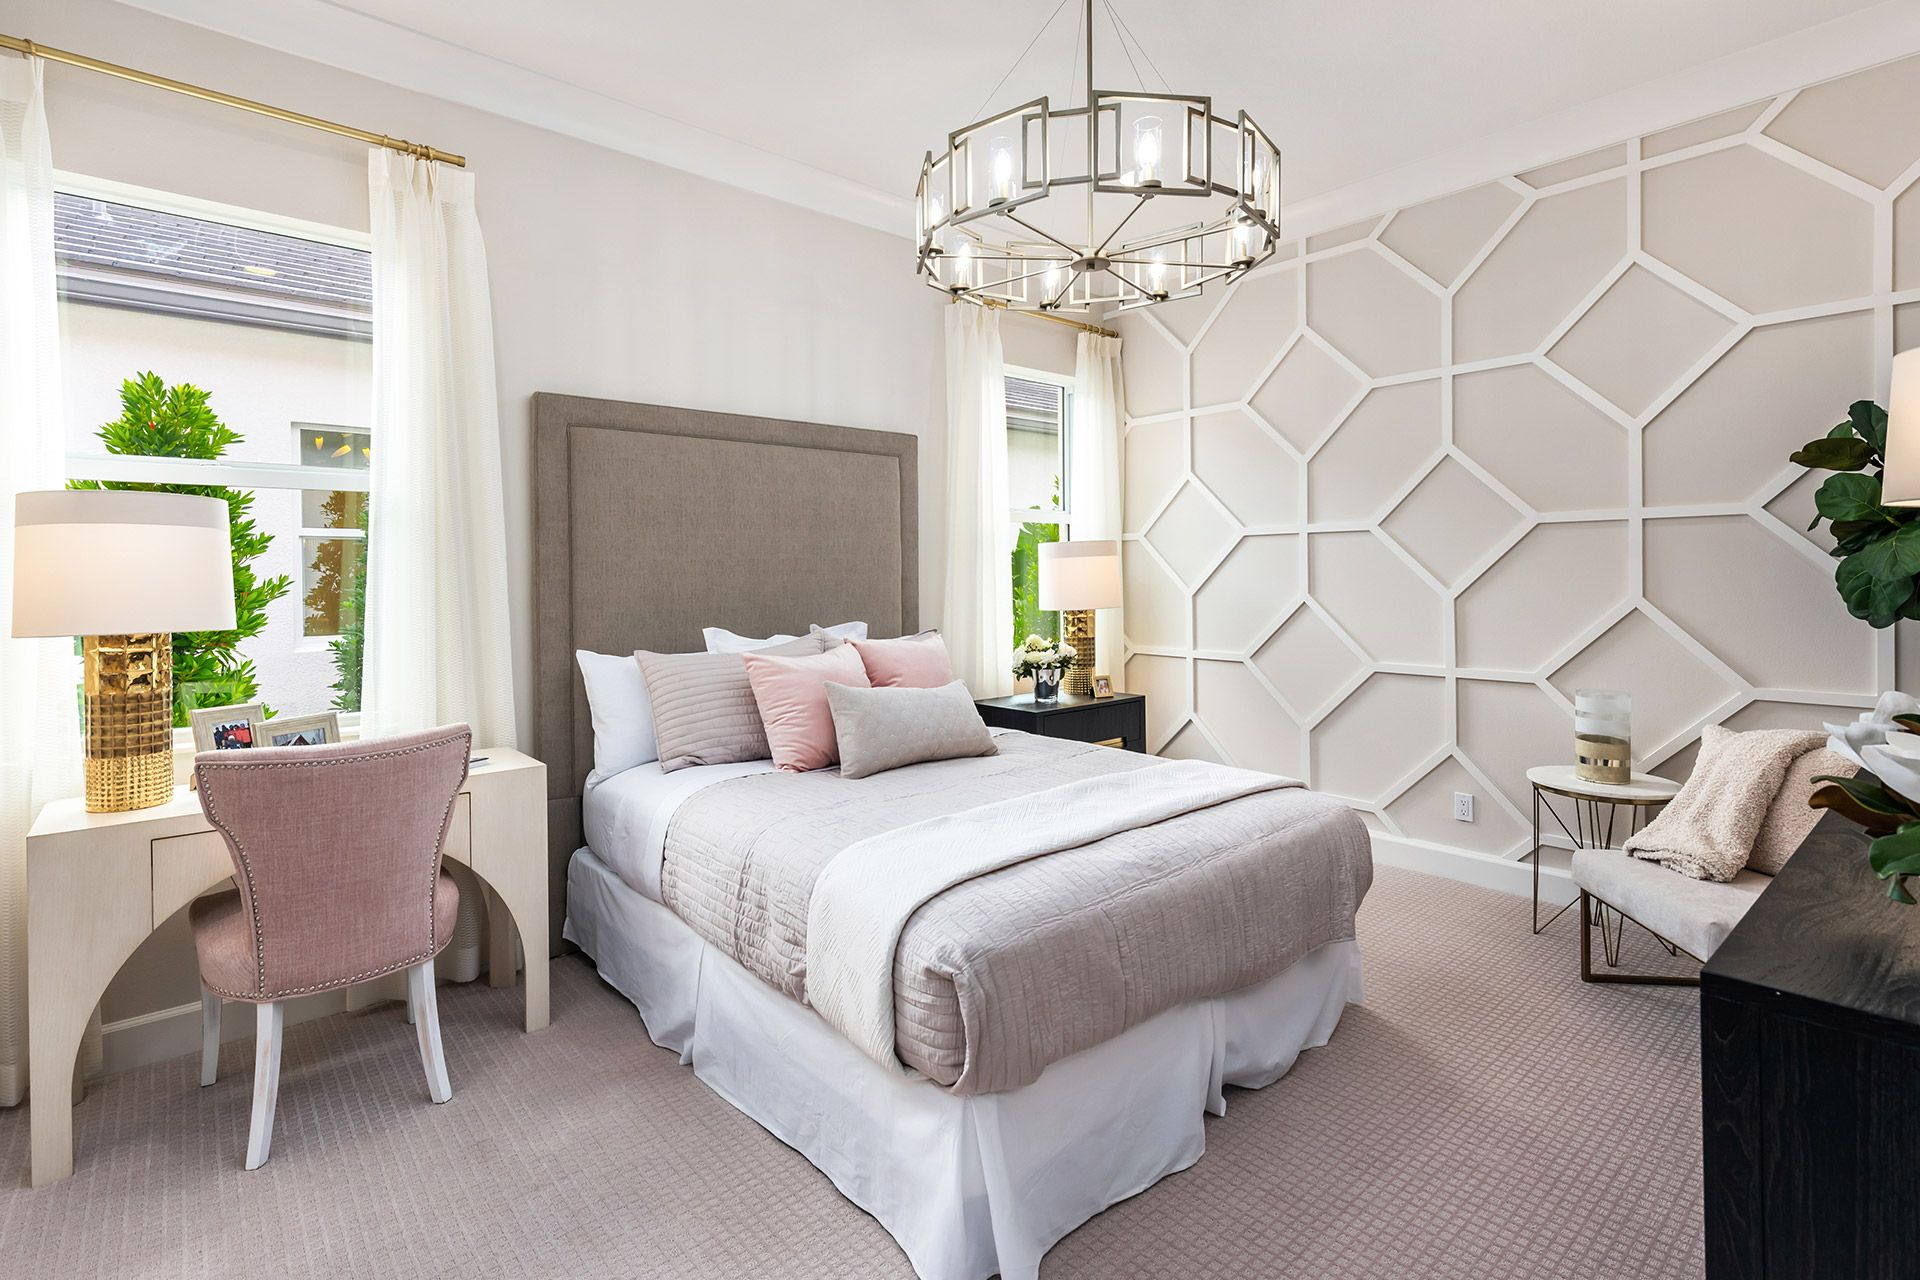 Bedroom featured in the Sanddollar By GL Homes in Naples, FL